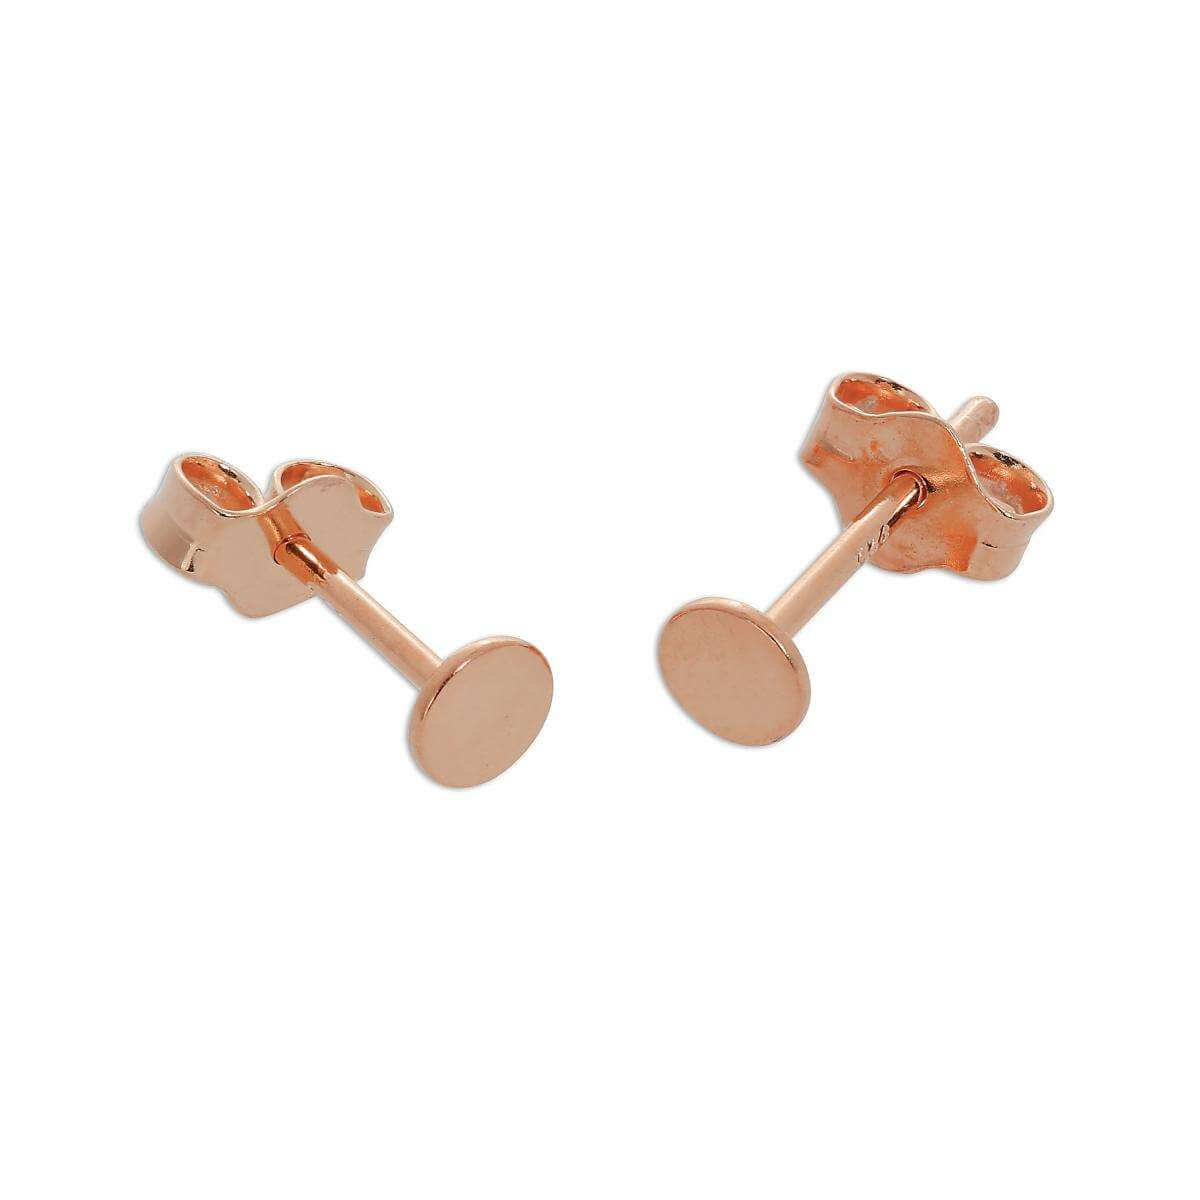 Rose Gold Plated Sterling Silver Flat Circle Stud Earrings